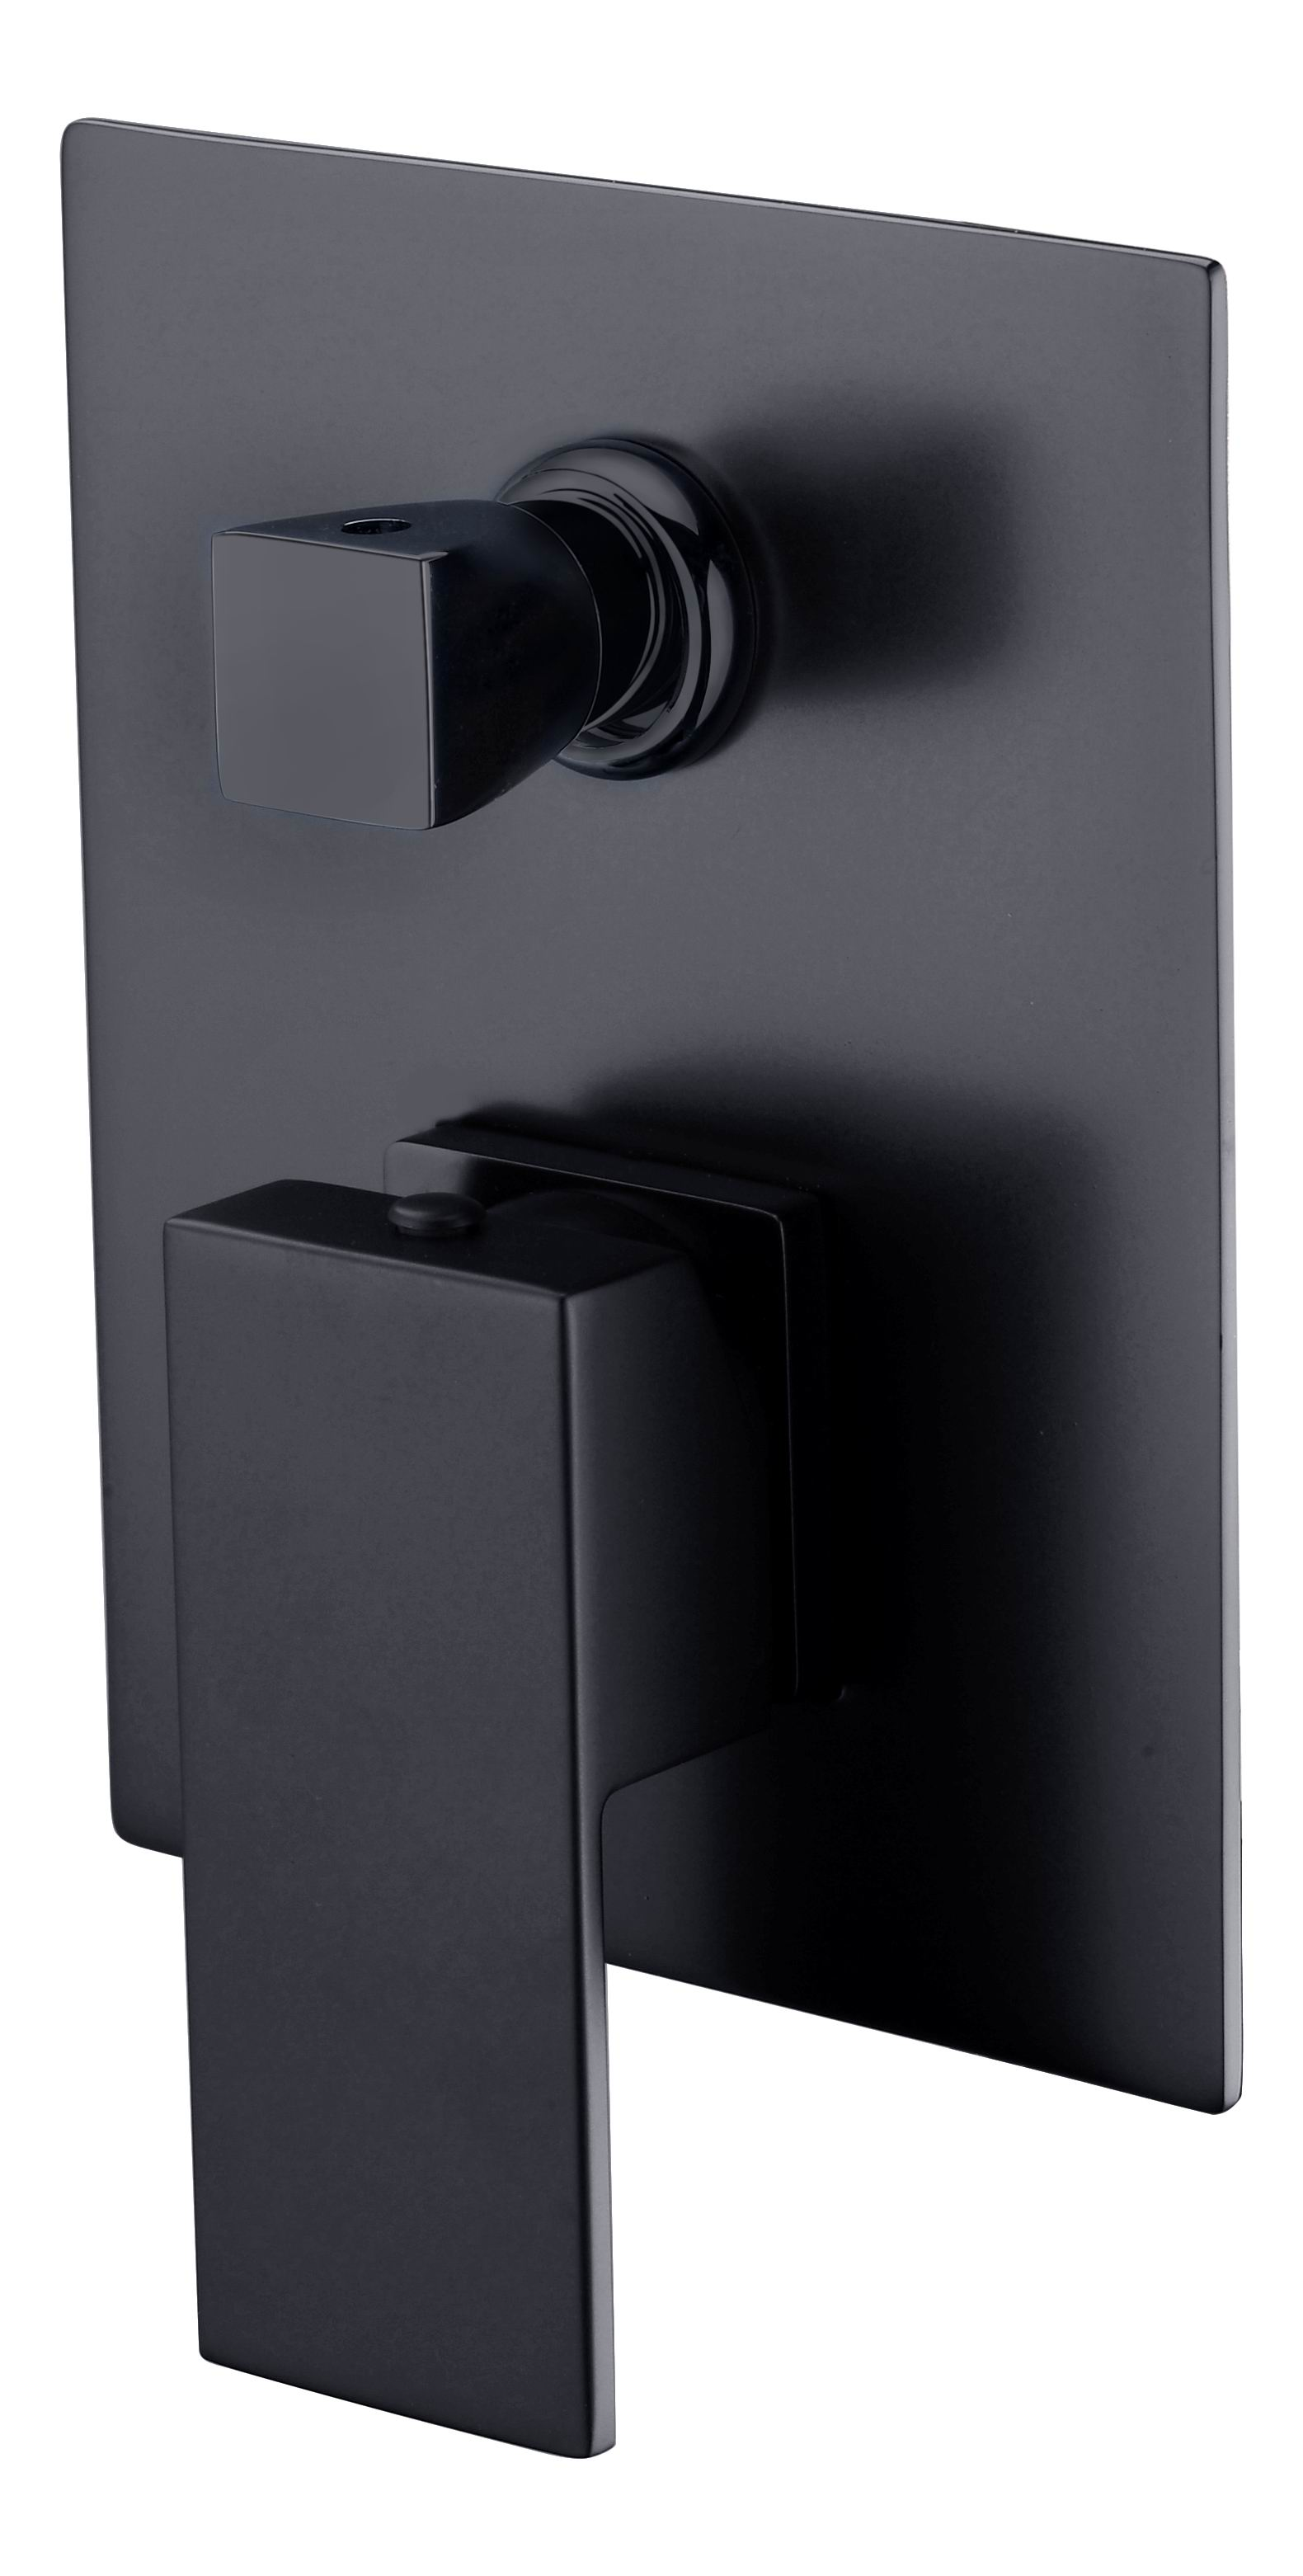 Linea Square Bathroom Wall Bath/Shower Mixer With Diverter Black